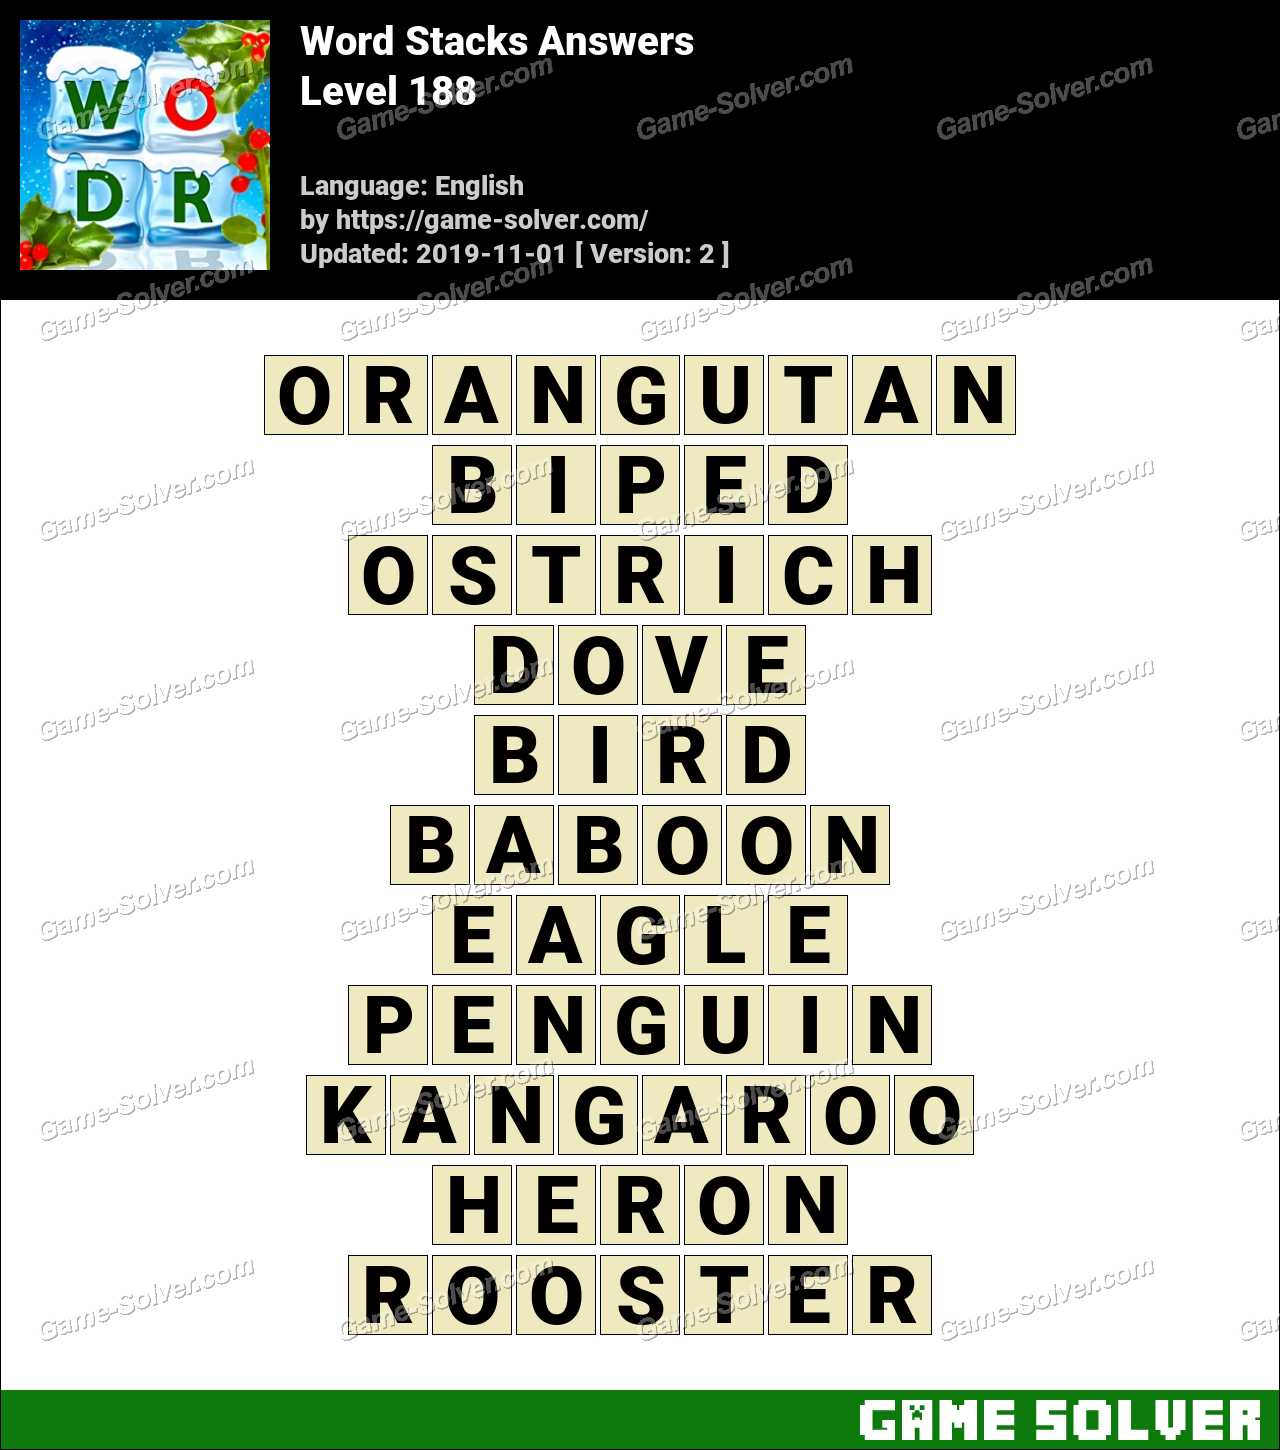 Word Stacks Level 188 Answers